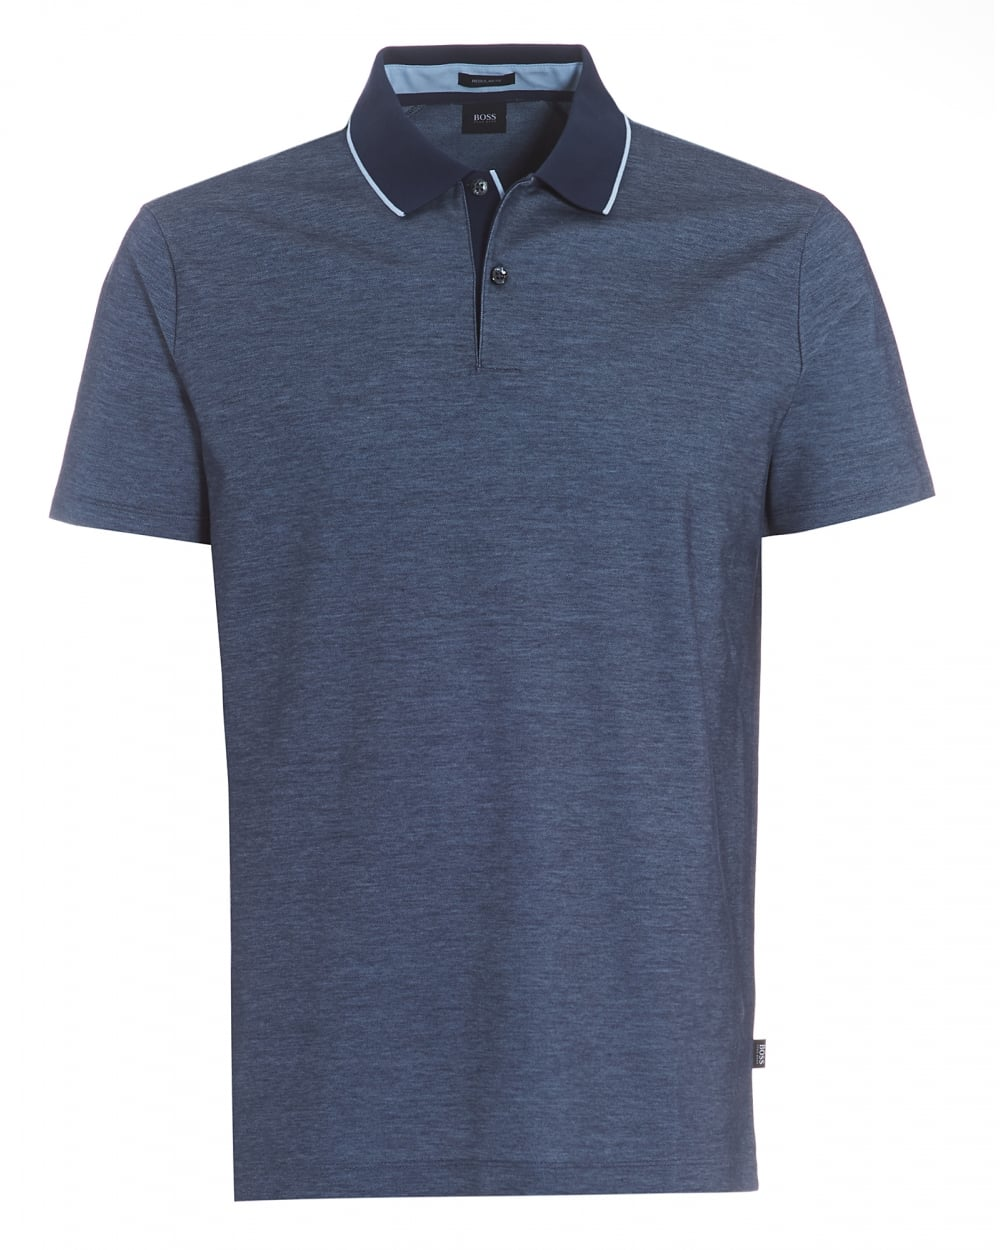 Mens Piket 07 Polo, Regular Fit Two-Tone Navy Polo Shirt